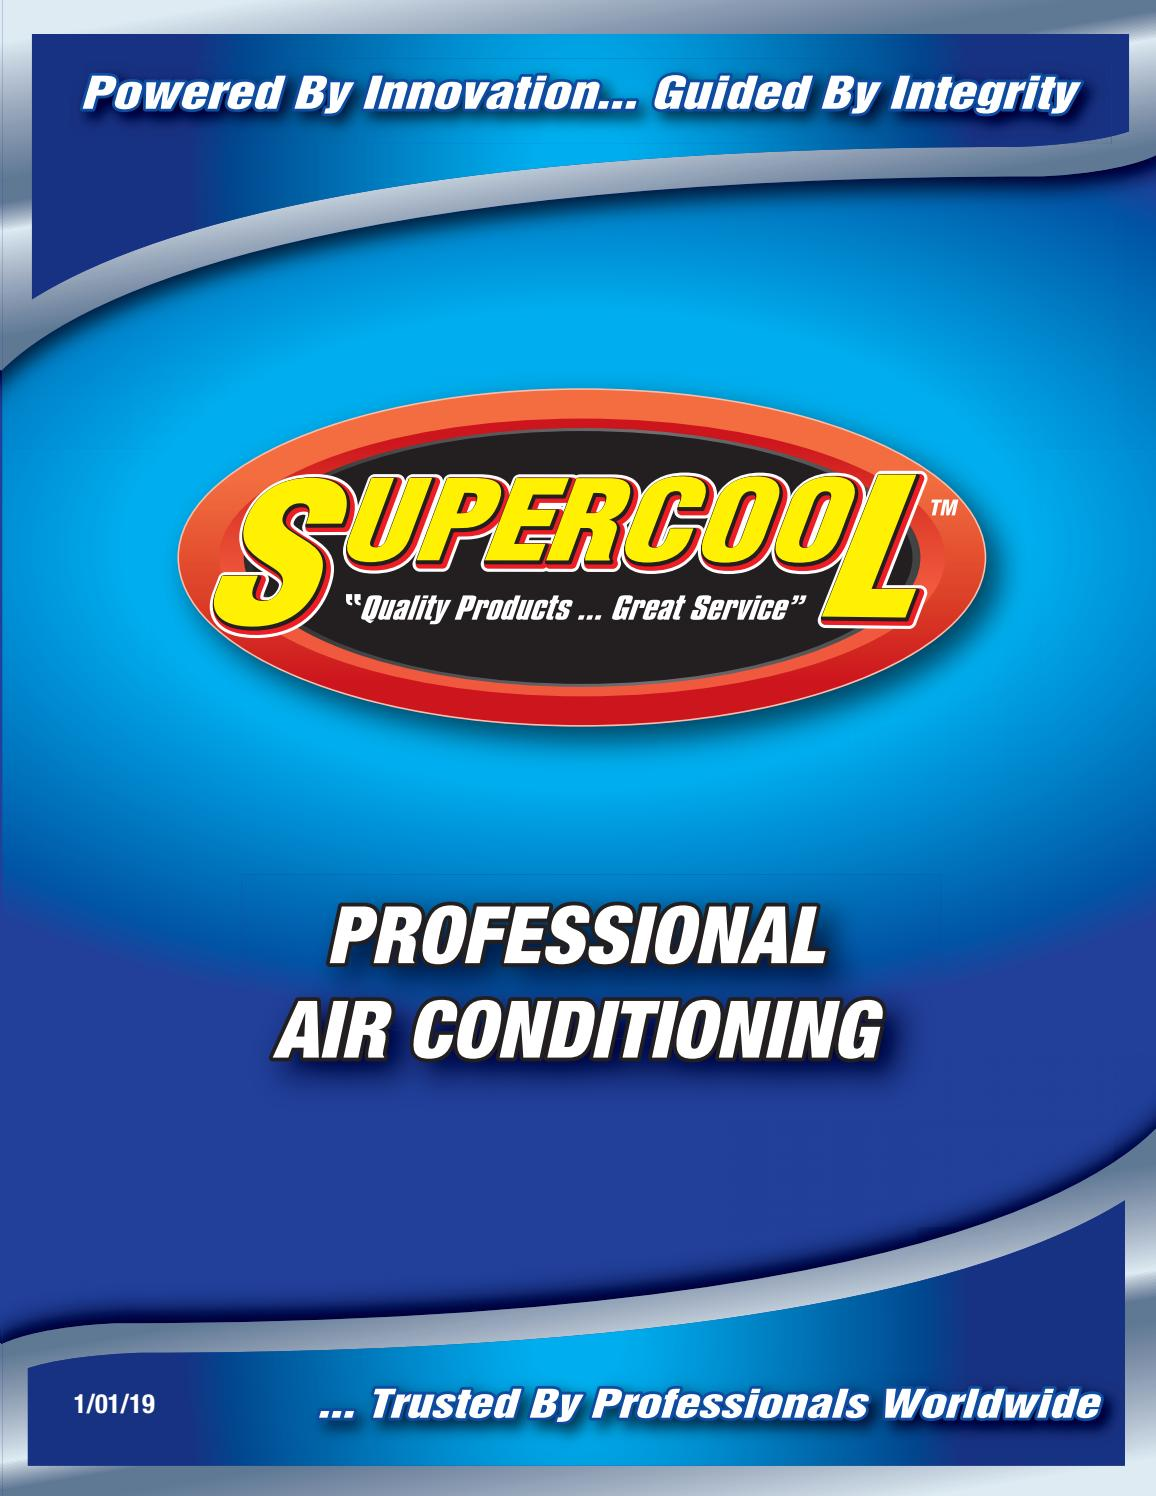 Supercool Professional Air Conditioning Catalog by TSI